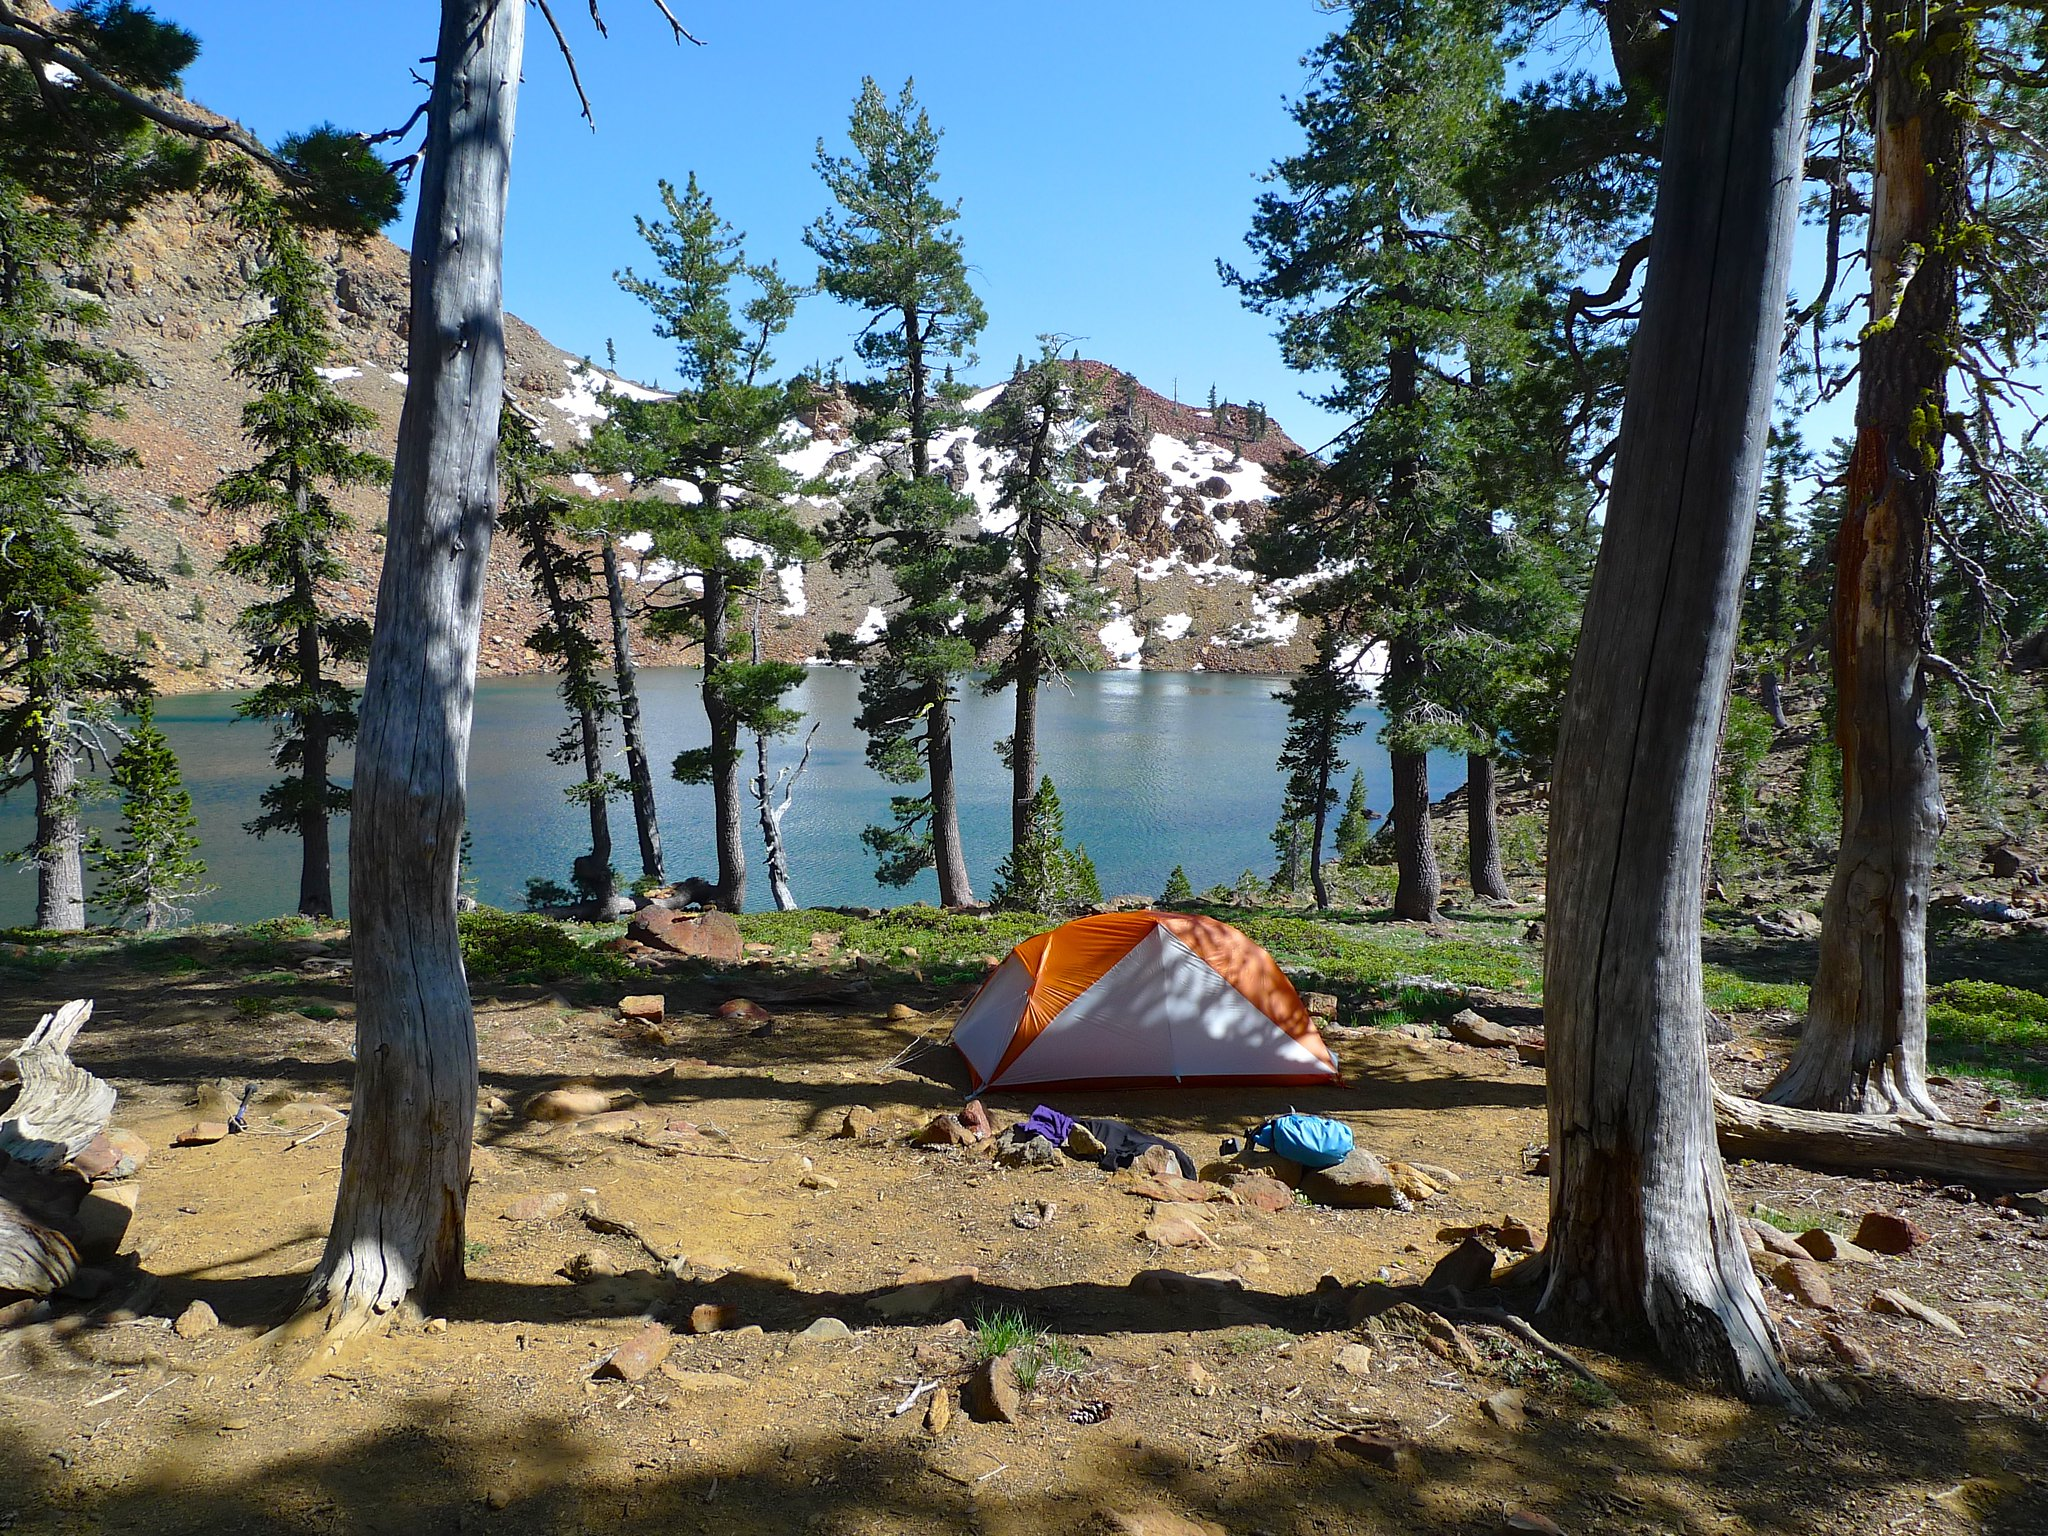 Camp at Summit Lake. I had the lake entirely to myself. Actually, I had the whole loop to myself. After seeing a couple at the trailhead headed up like me, I passed a few parties leaving on the trail and then never saw another soul the whole trip.